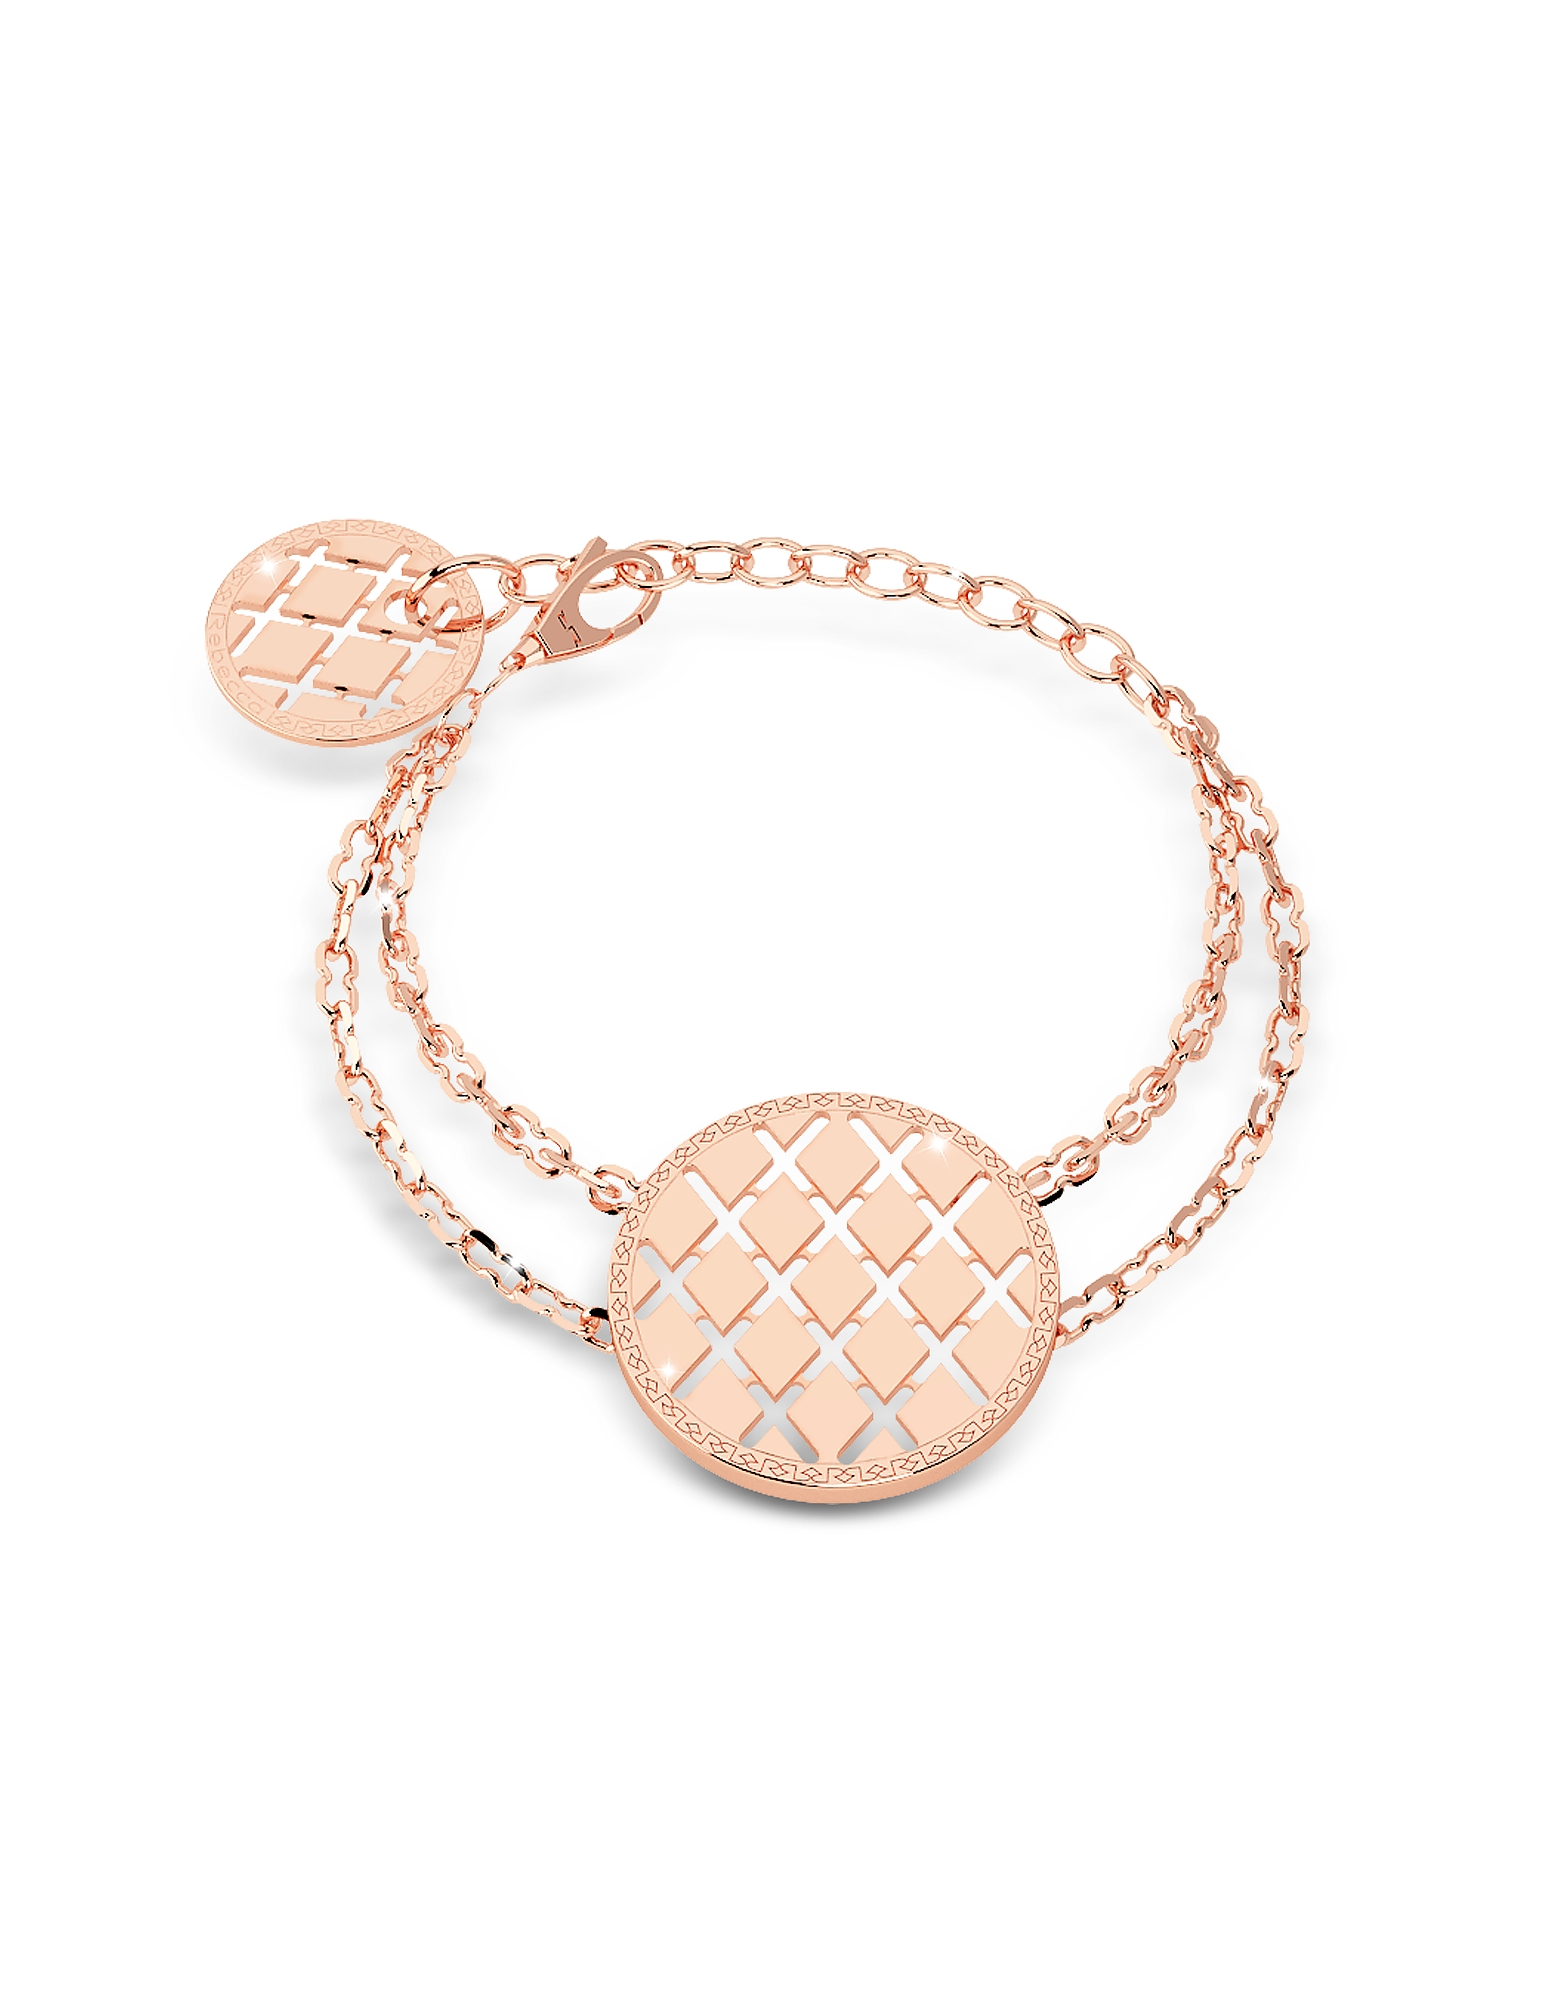 Melrose Rose Gold Over Bronze Bracelet w/Round Charms